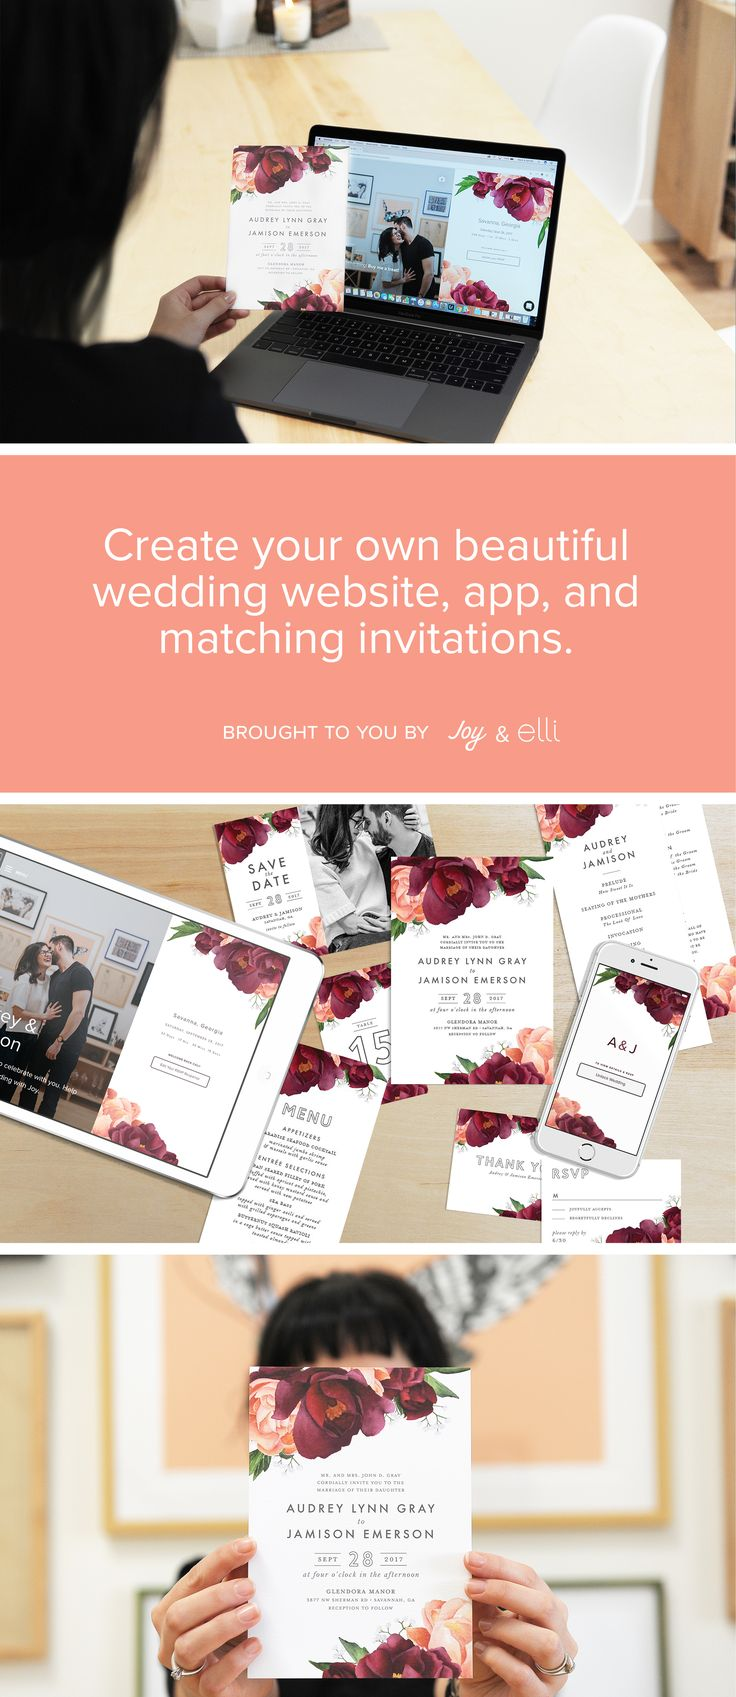 A free beautiful wedding website and app—now with matching invites!